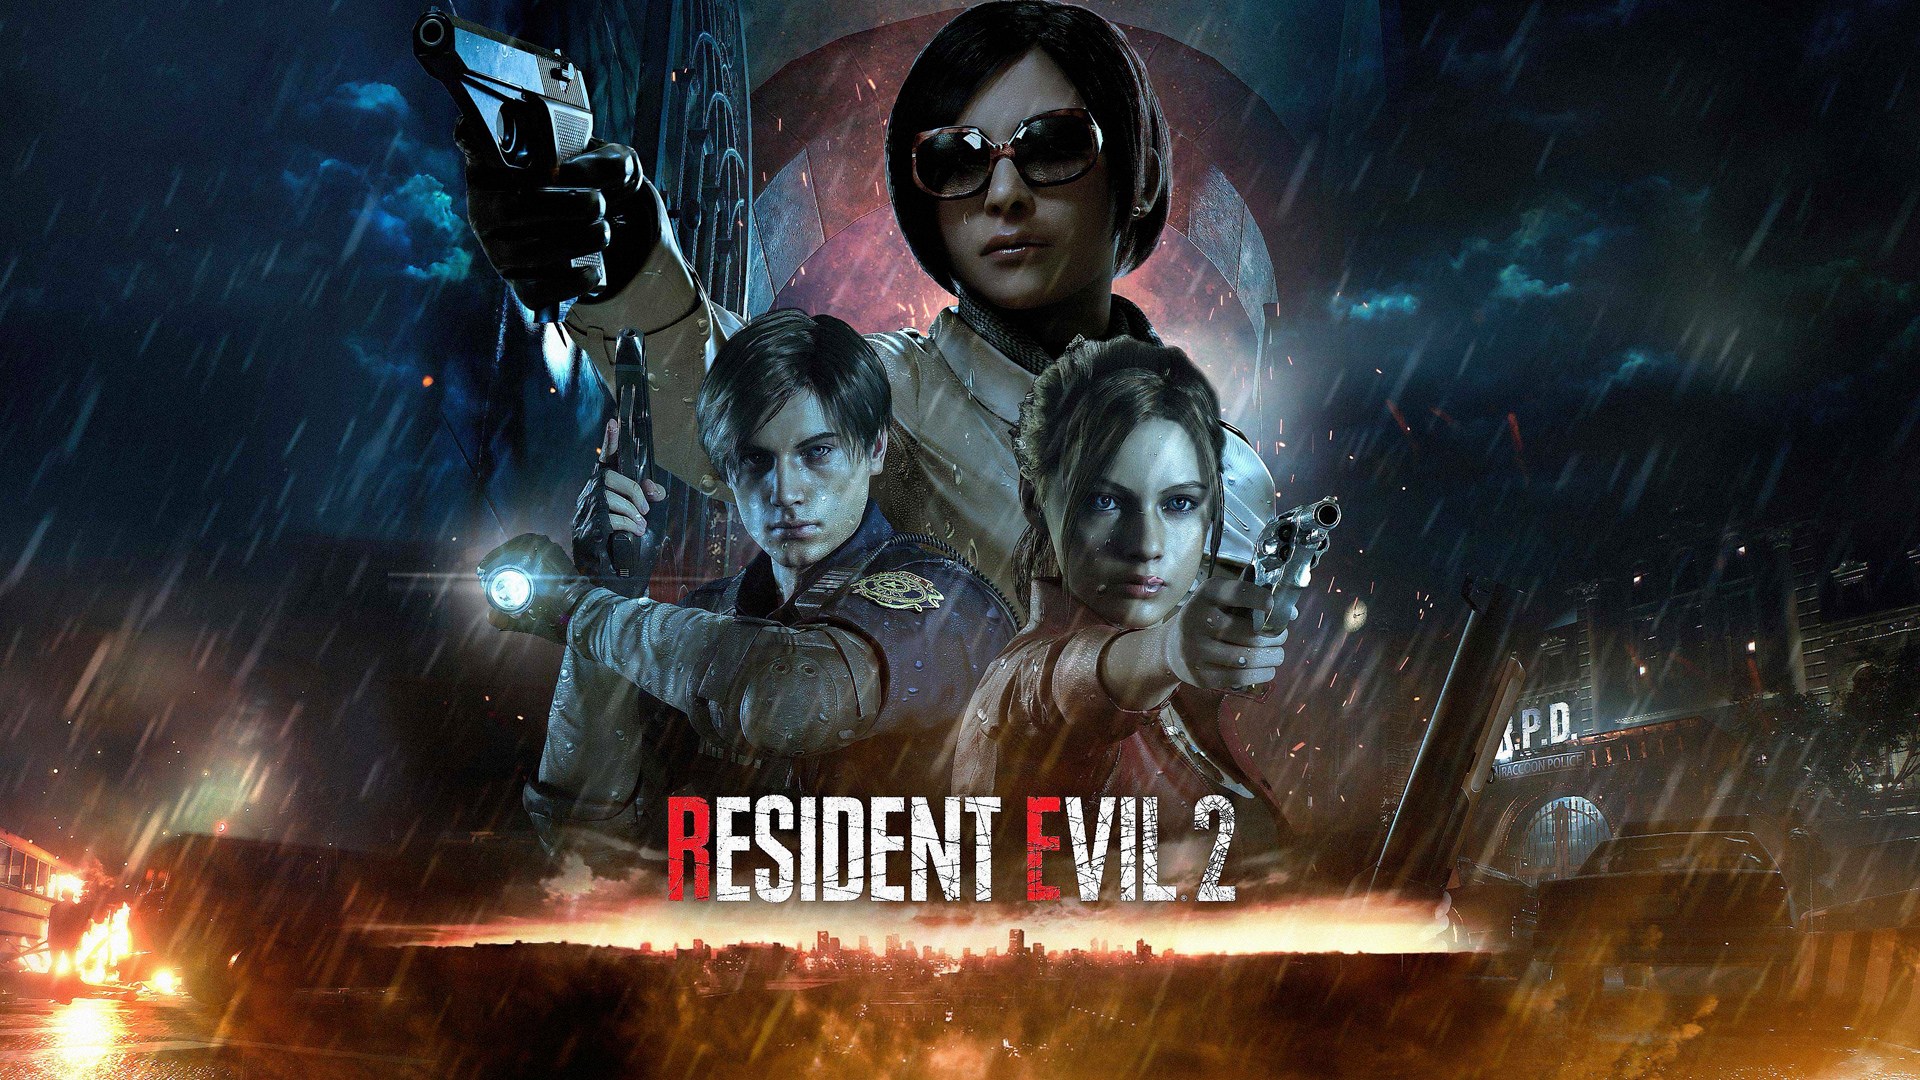 Resident evil 2 remake clipart clip free download Resident Evil 2 Remake Is More Than You Think - URBAN GAMEPLAY clip free download